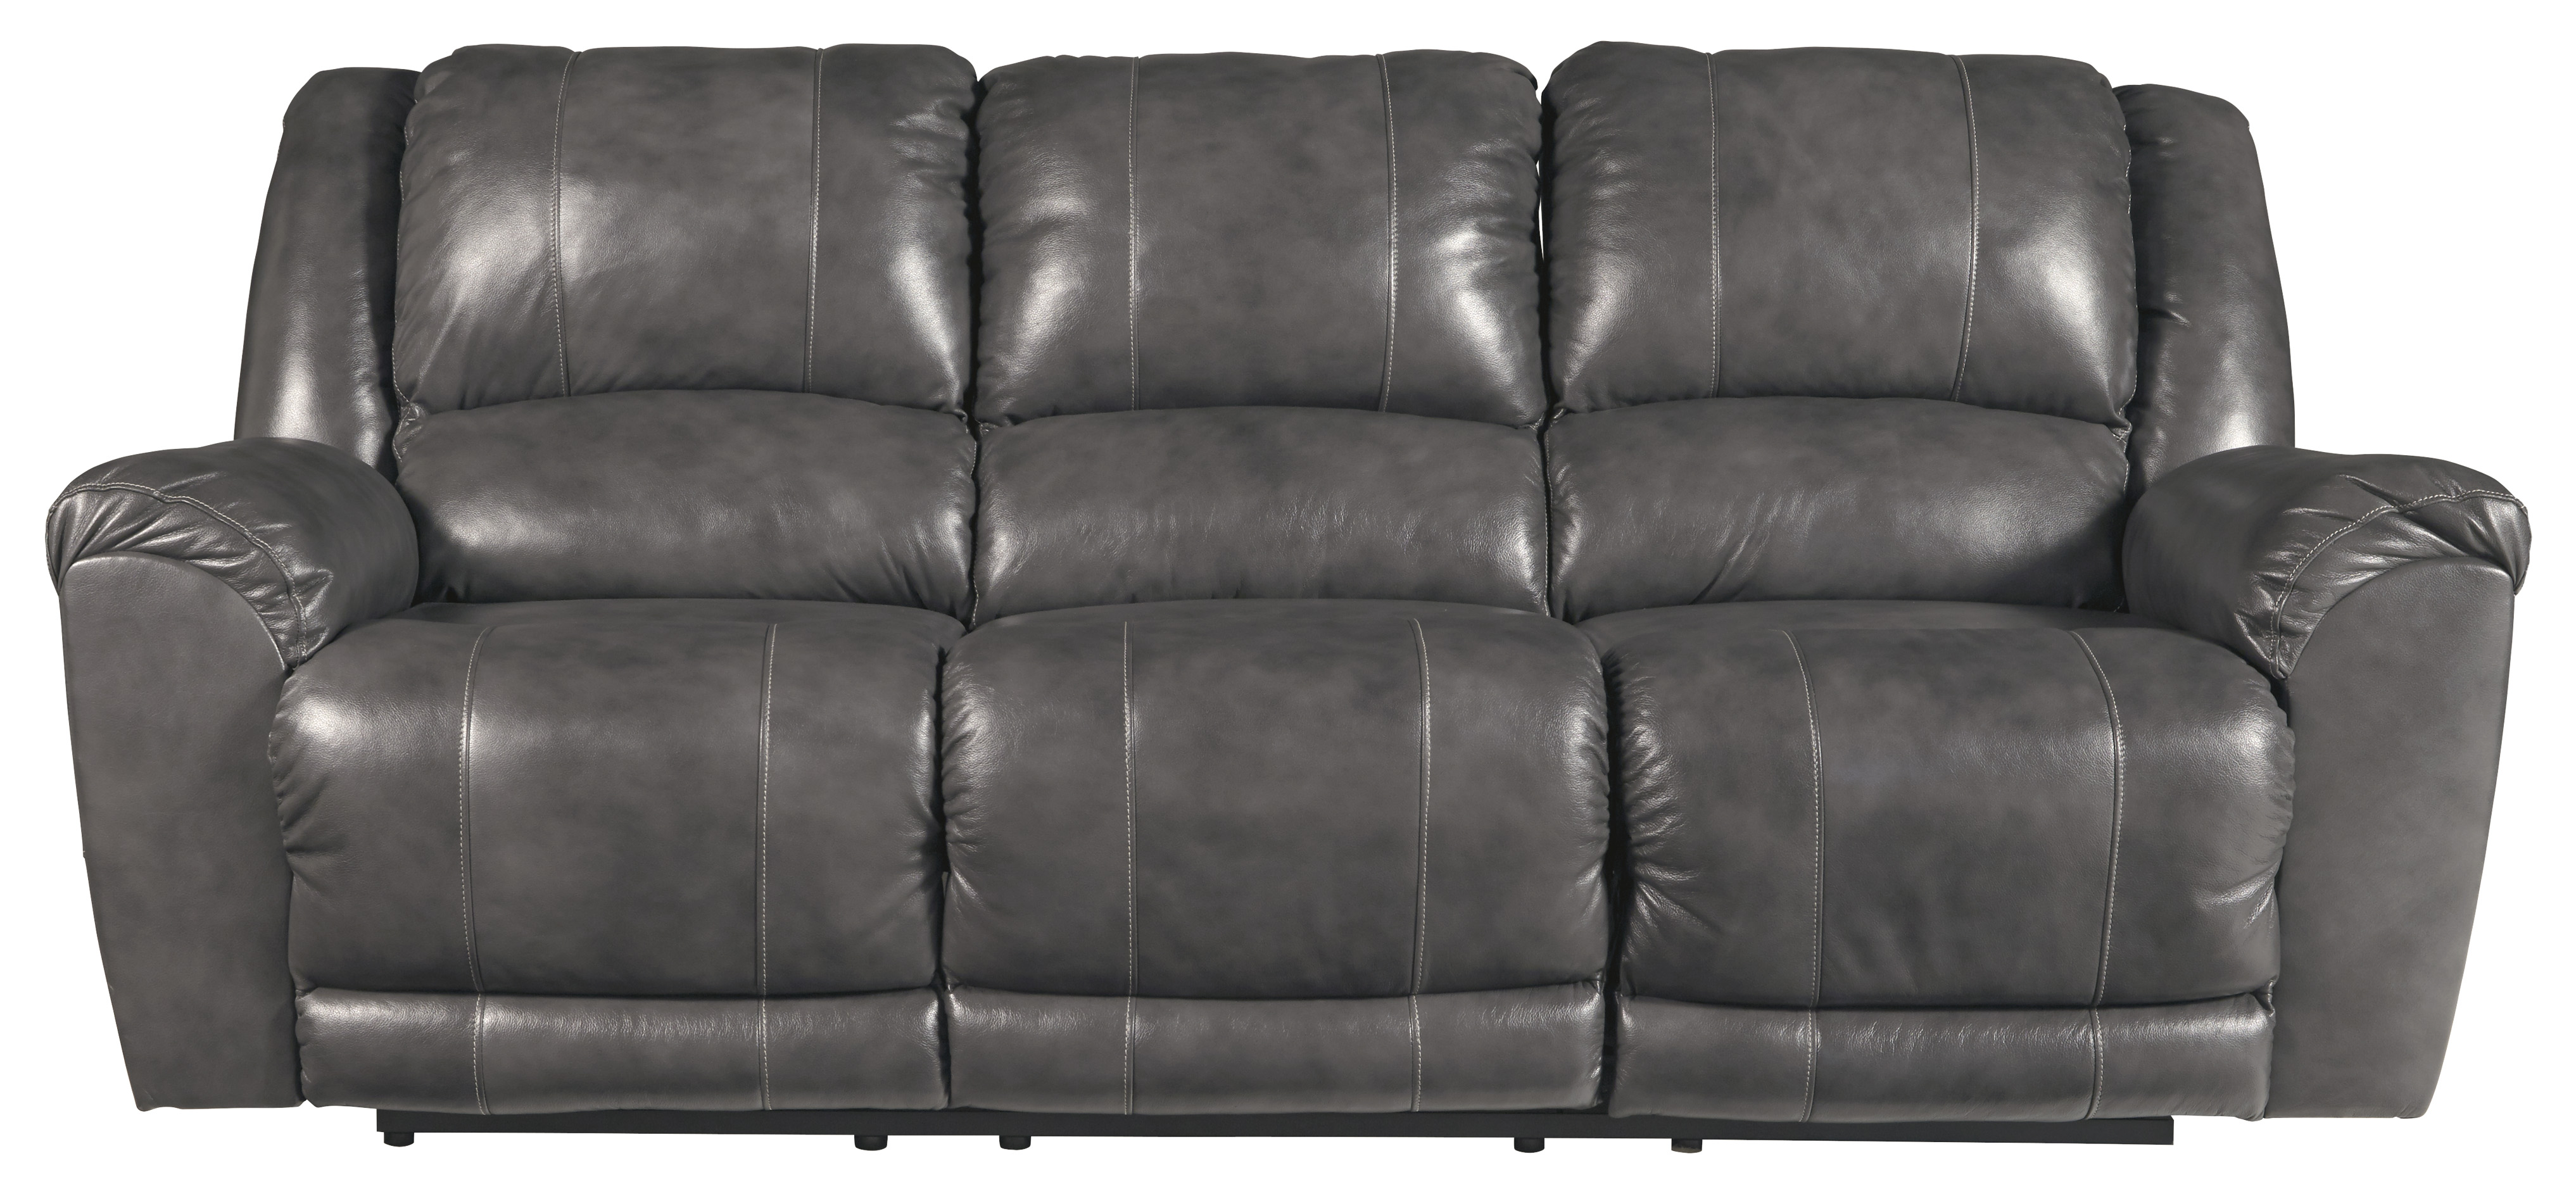 Persiphone Charcoal Power Reclining Sofa,Signature Design By Ashley